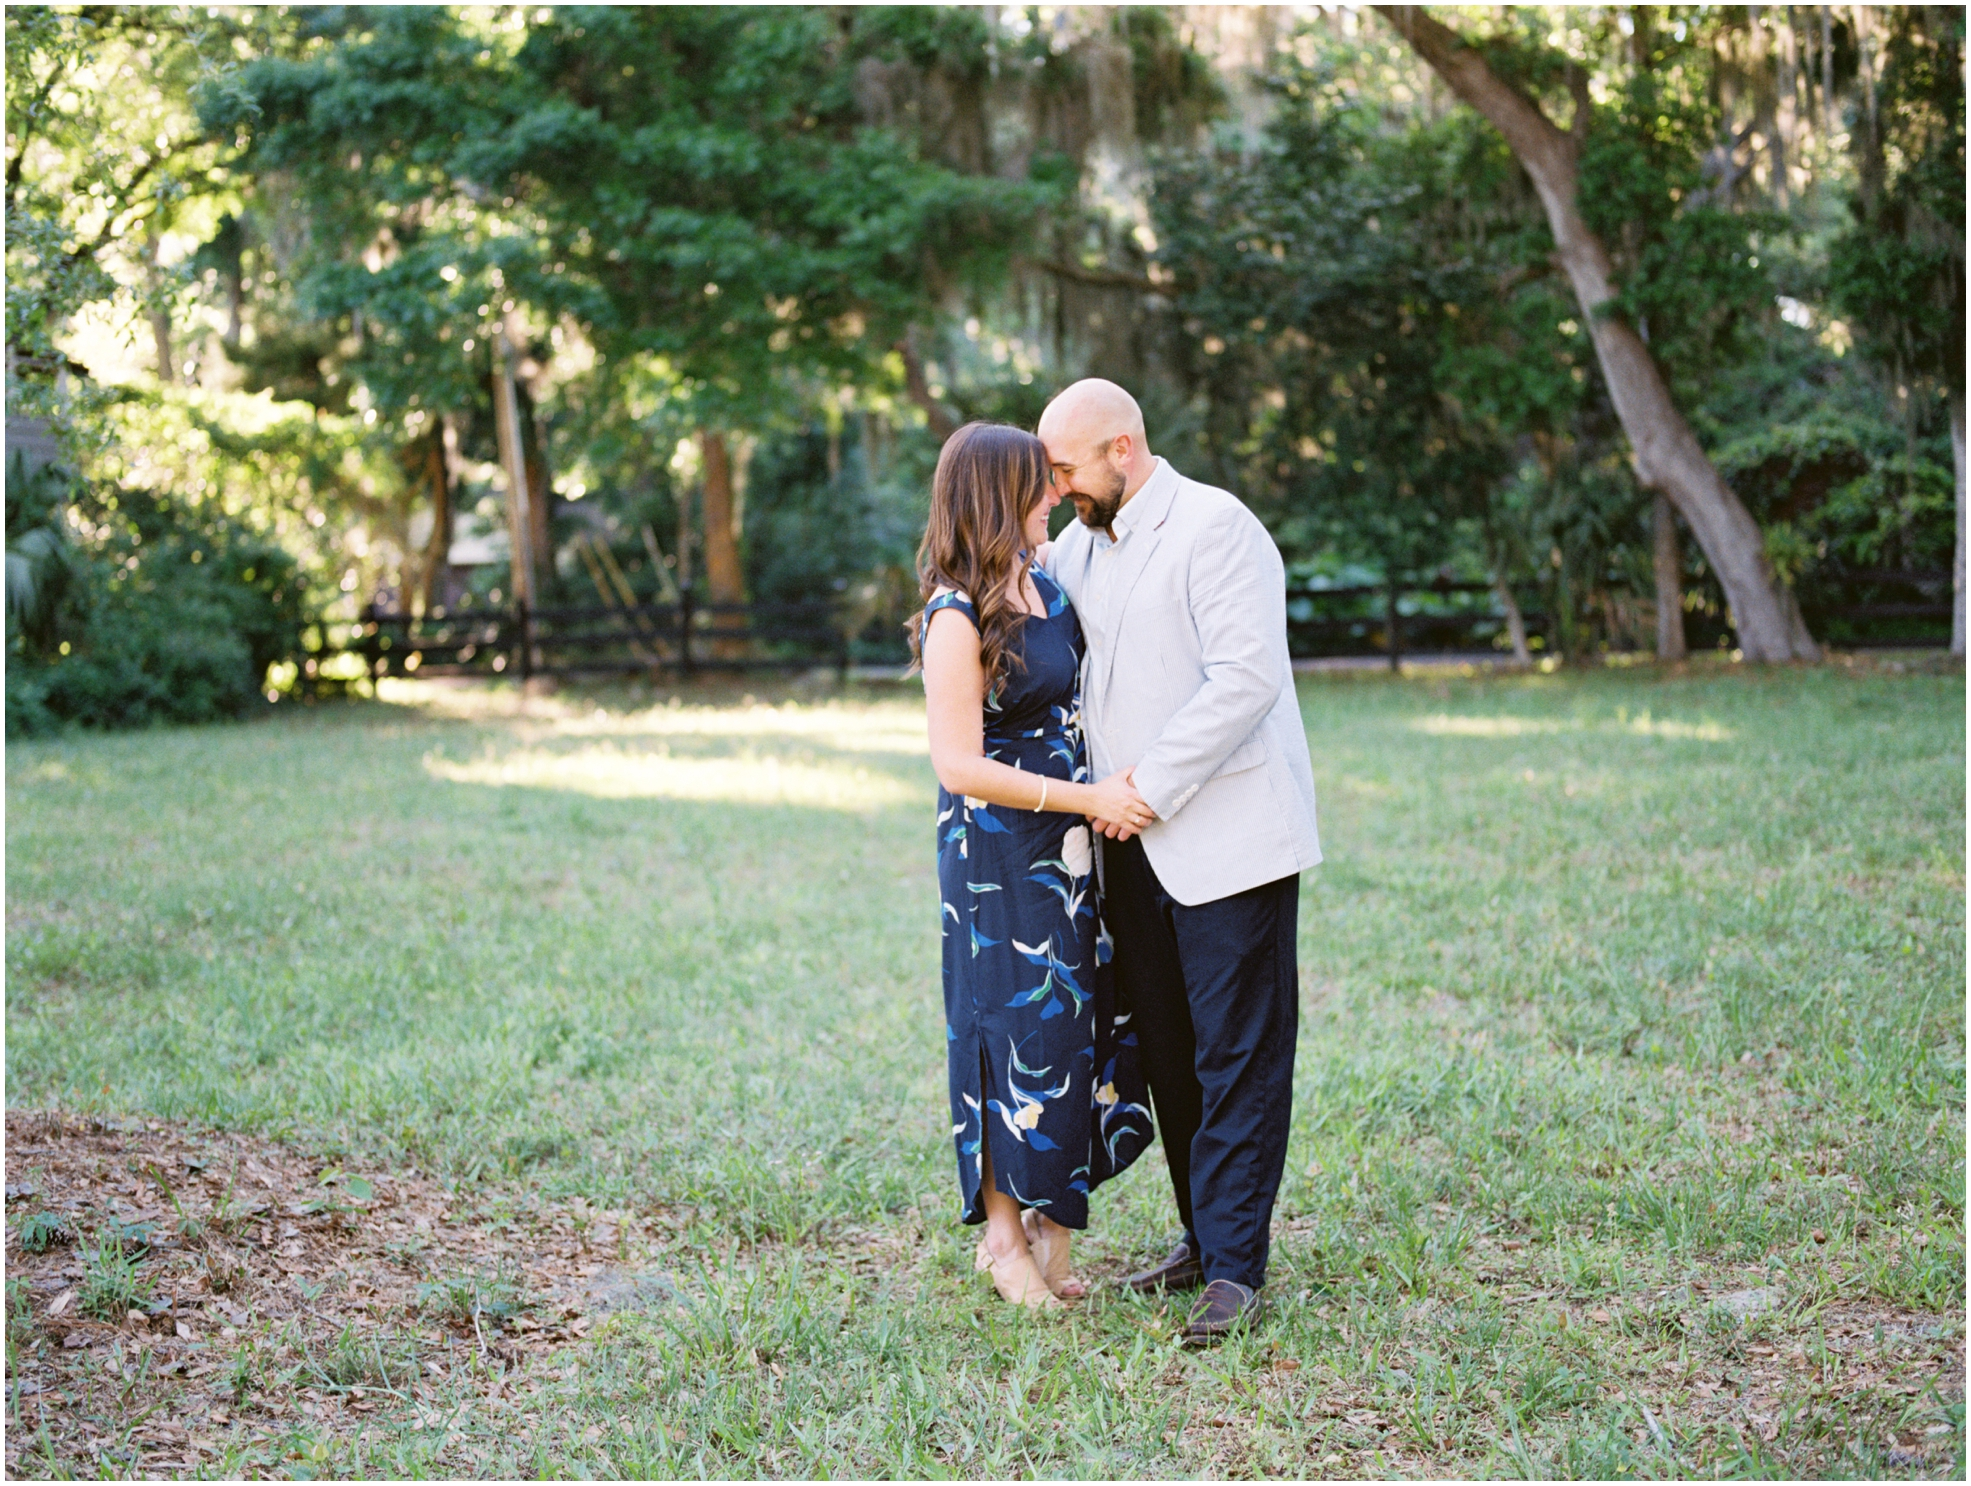 Lisa Silva Photography- Jacksonville, St. Augustine, Amelia Island, Ponte Vedra Beach, North East Florida Fine Art Film Photographer- Engagement Session in Historic Downtown Fernandina Beach- Amelia Island Wedding Photographer_0037.jpg